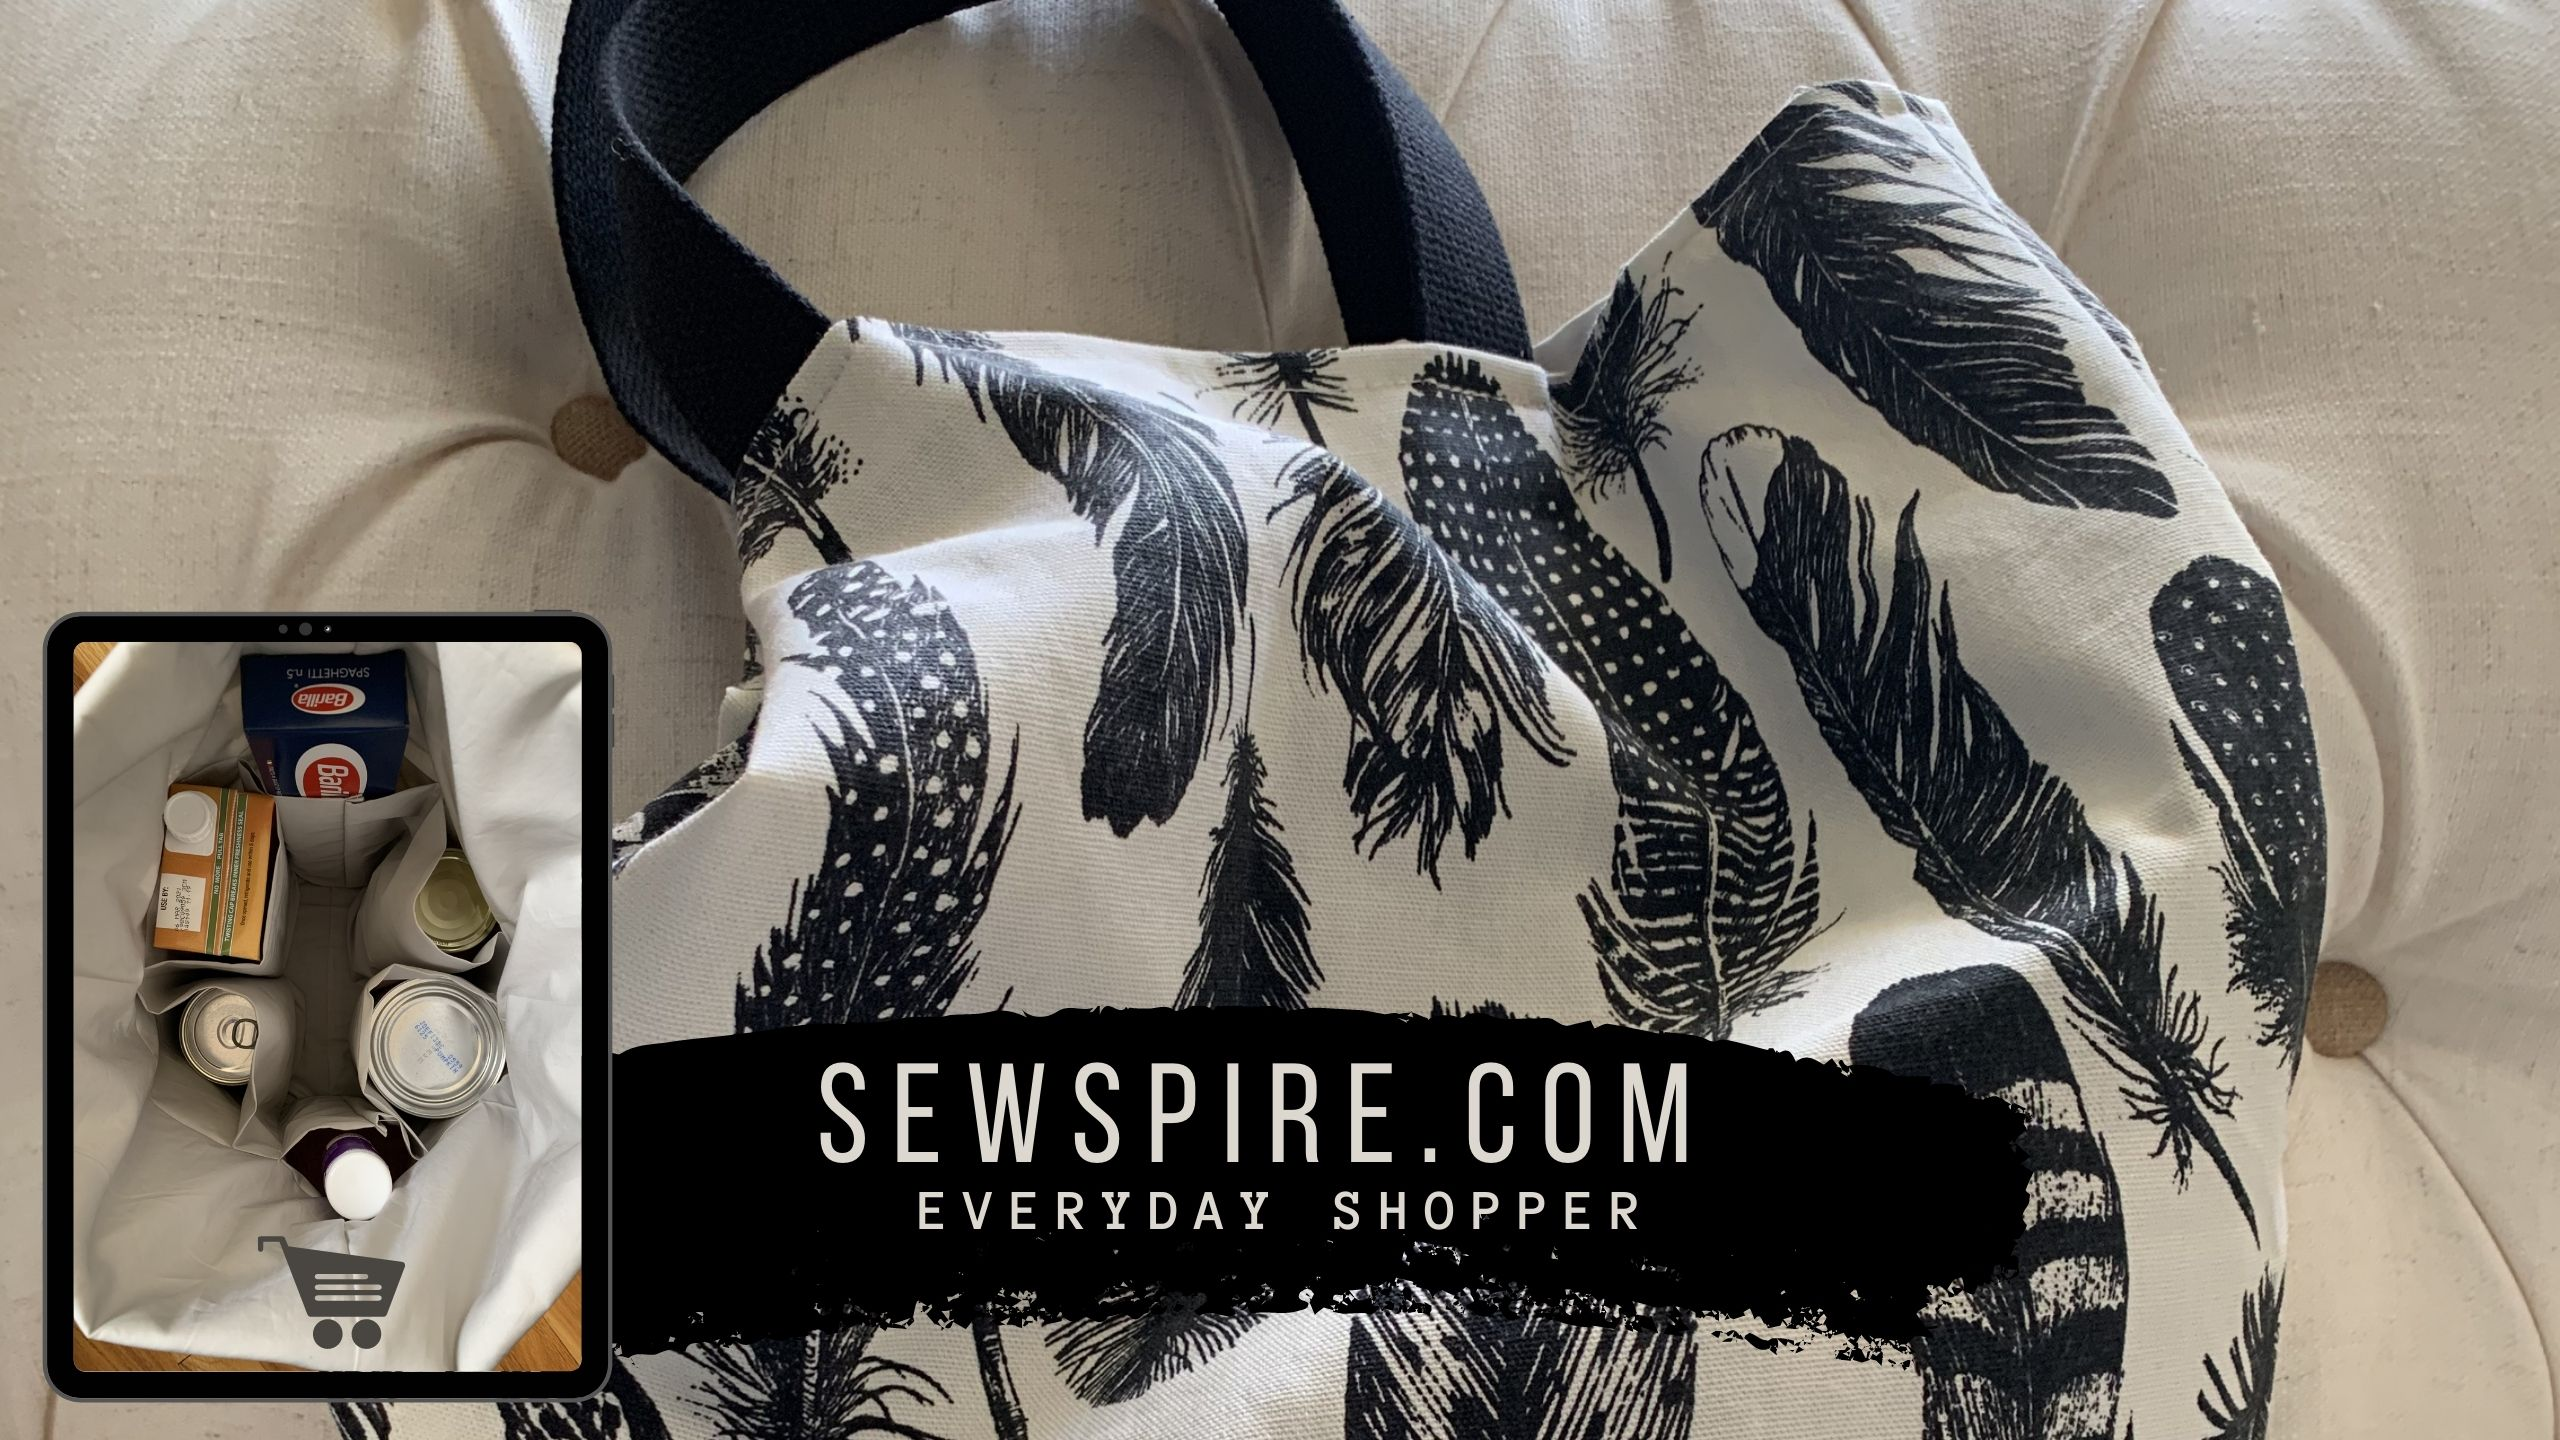 Sewspire Everyday Shopper